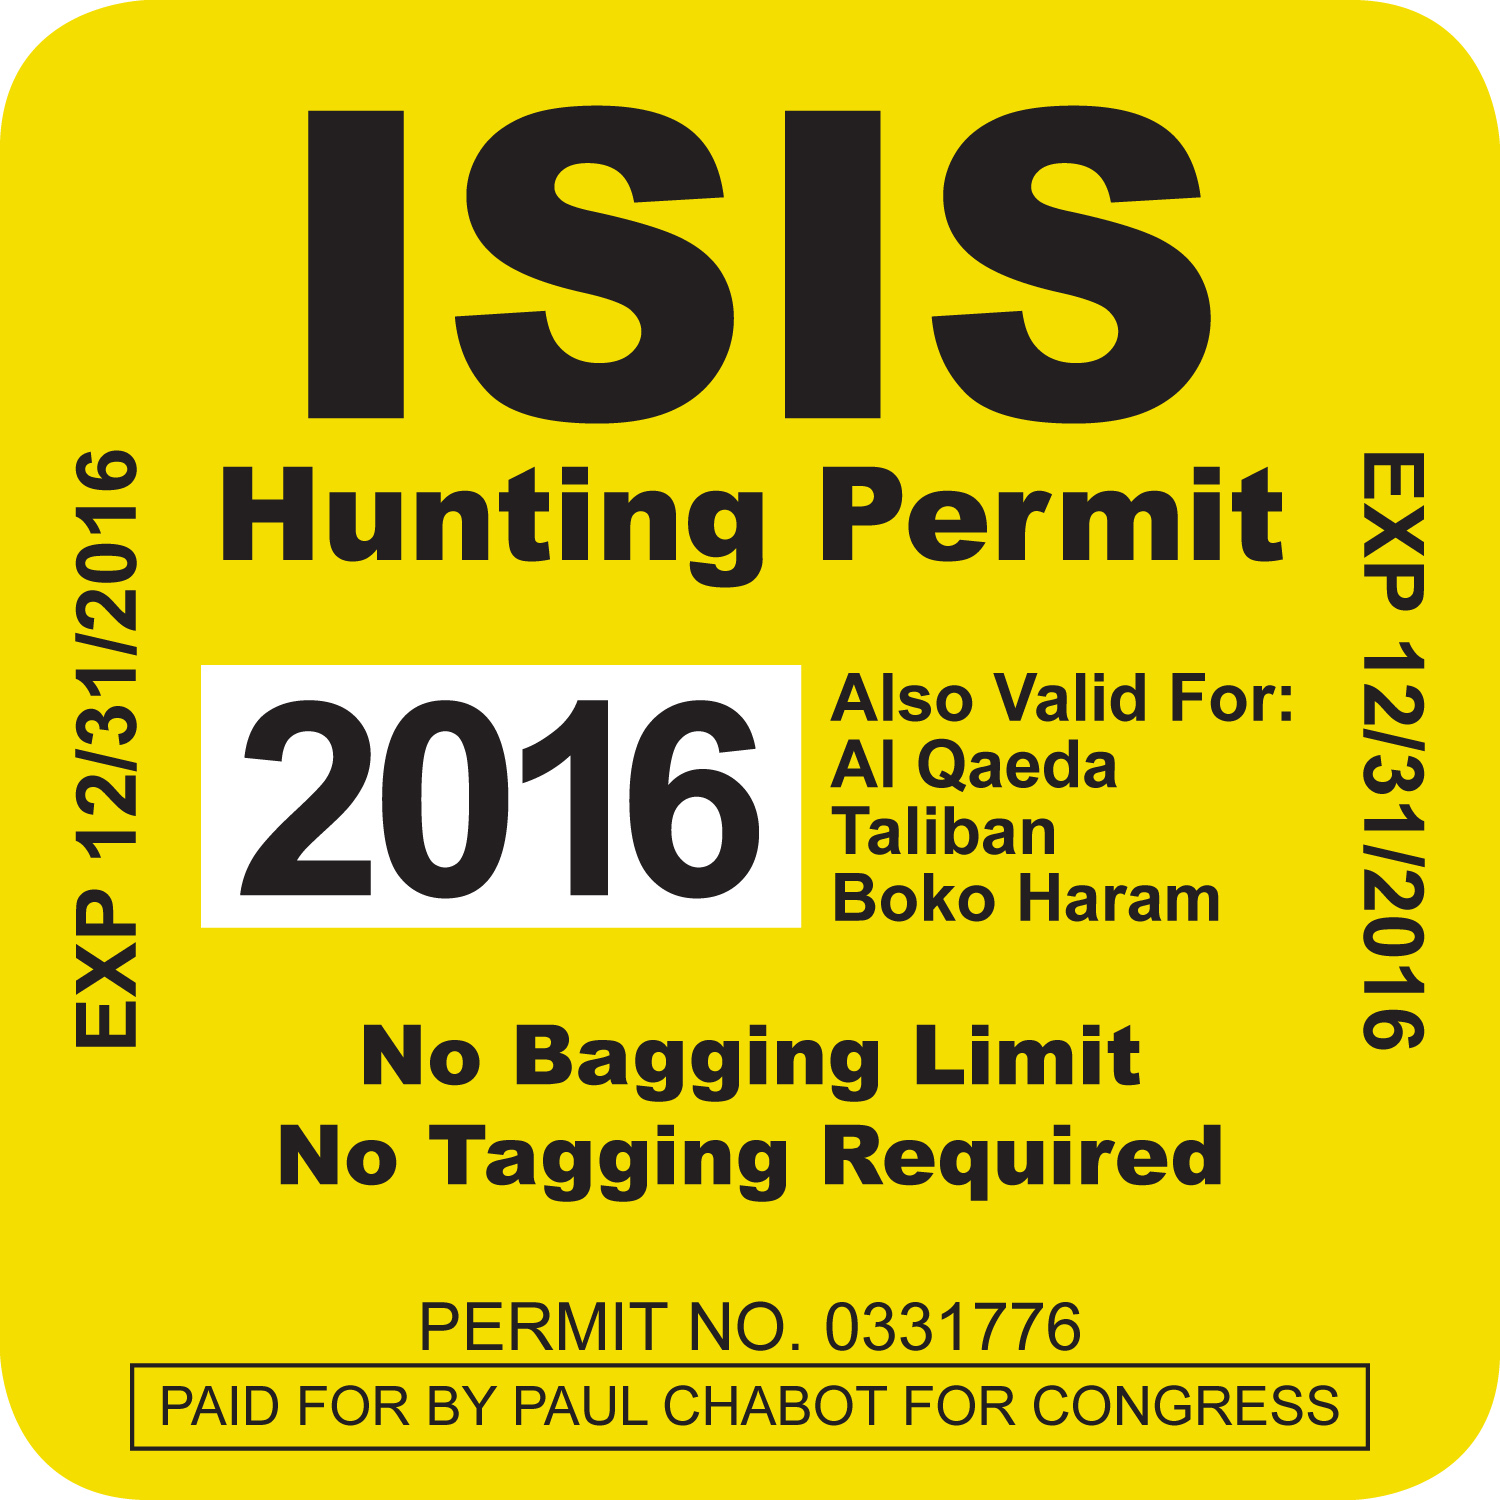 ISIS-hunting-permit-from-California-congressional-candidate